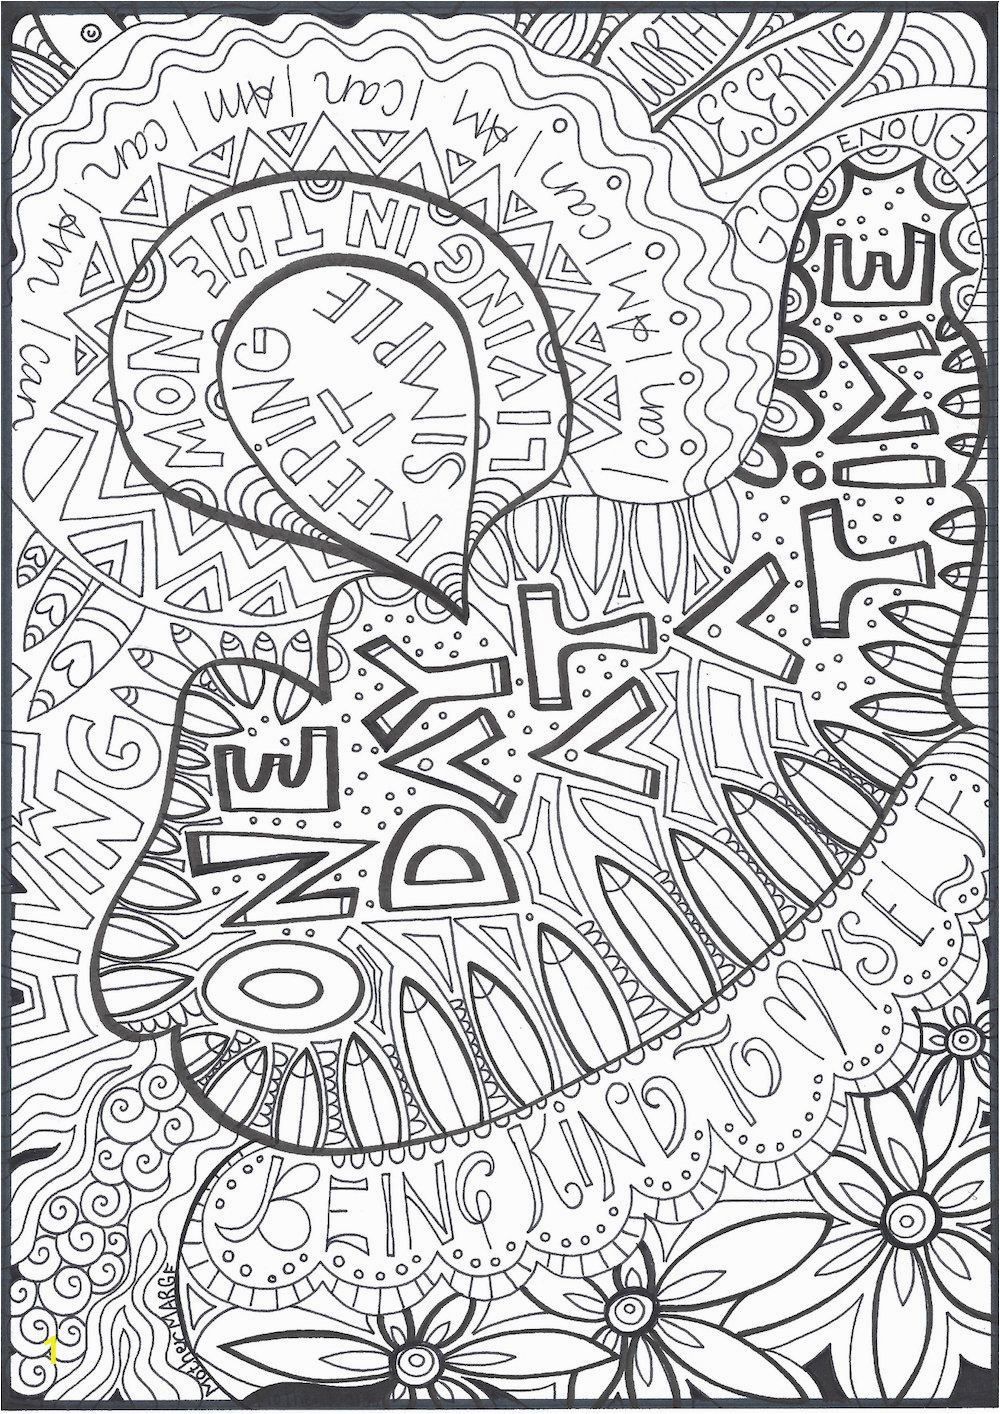 Free Printable Coloring Pages for Adults Only Quotes E Day at A Time Coloring Page Adult by